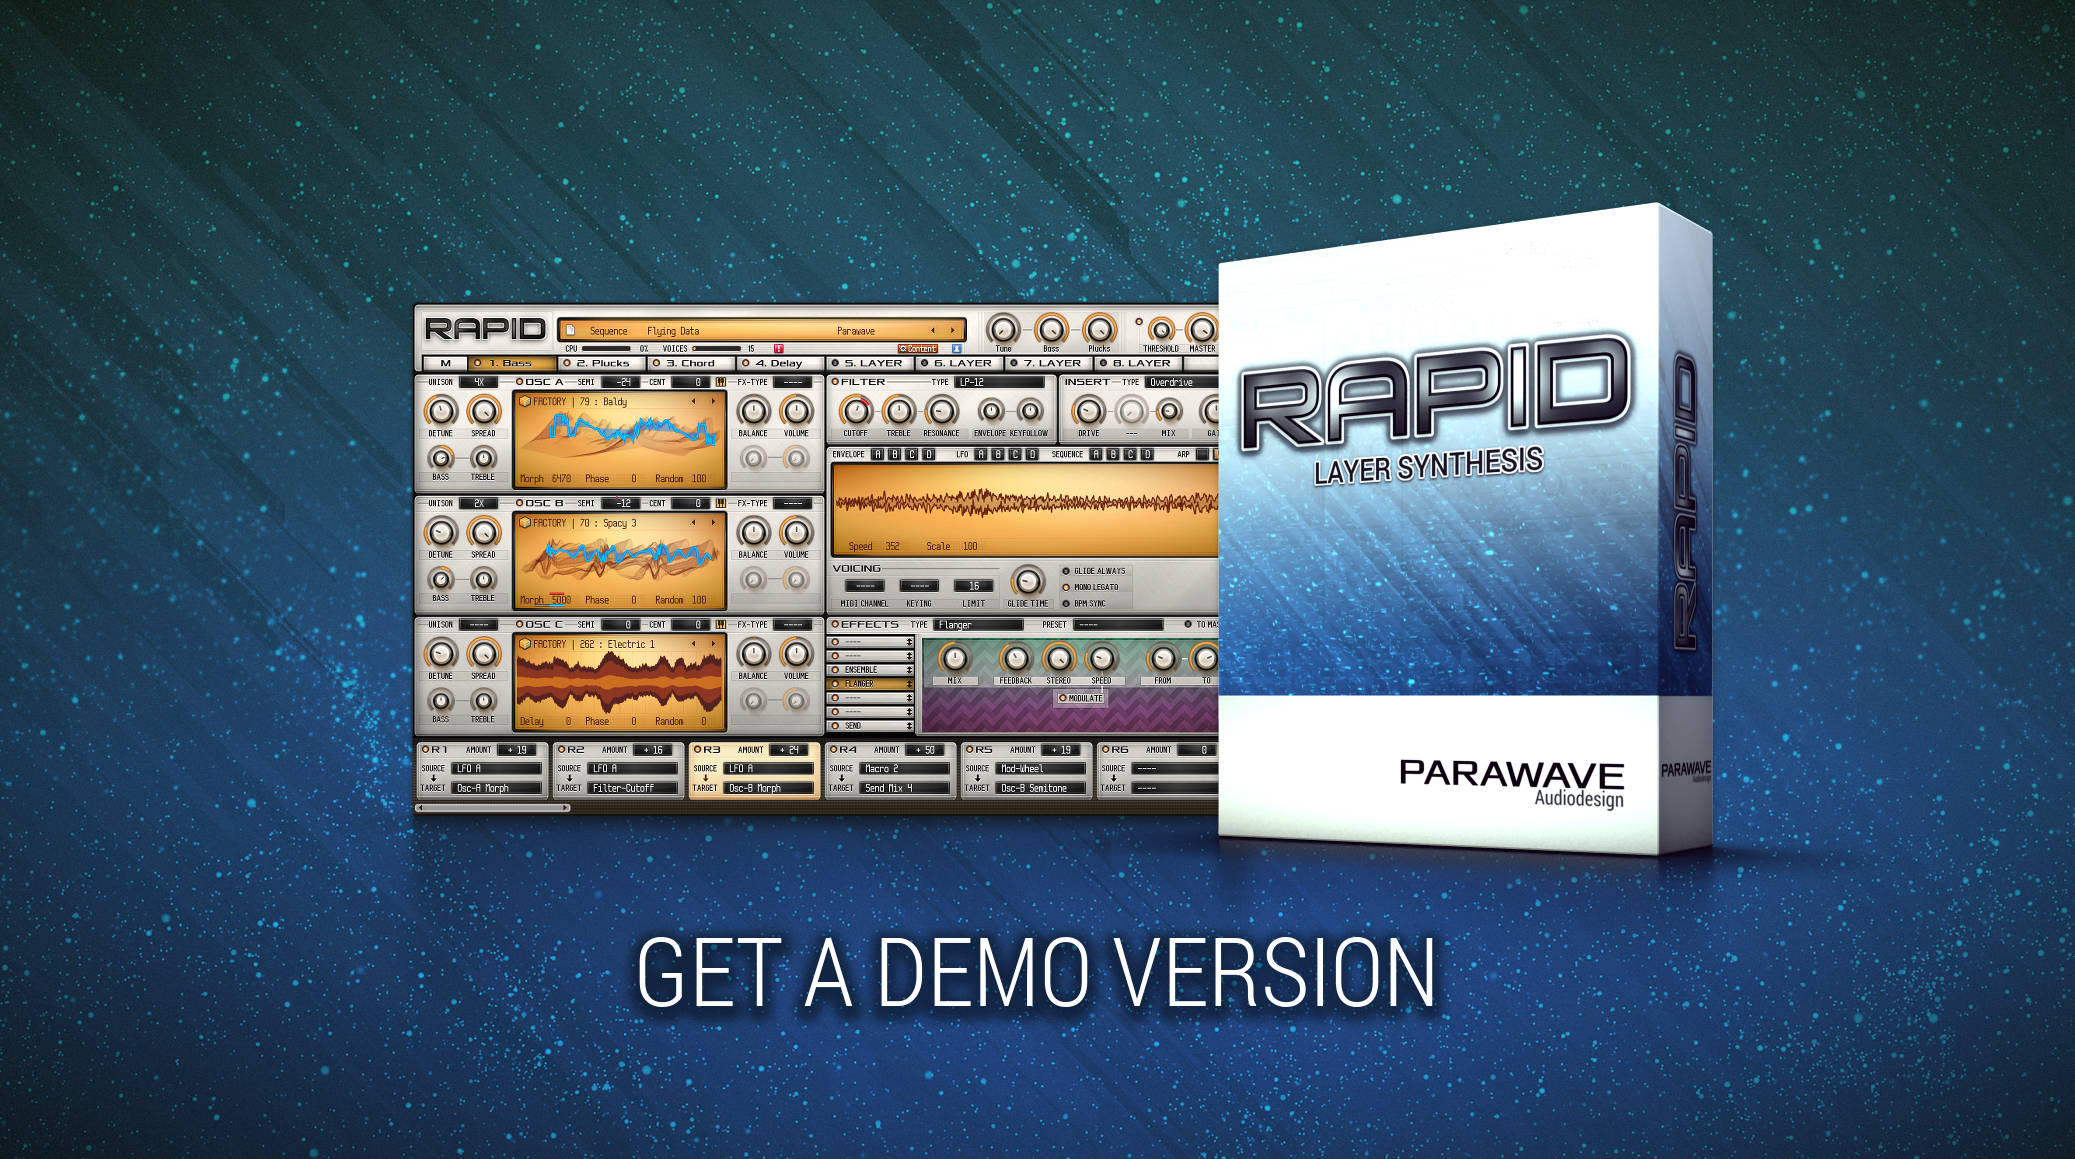 RAPID Synthesizer - Demo Version